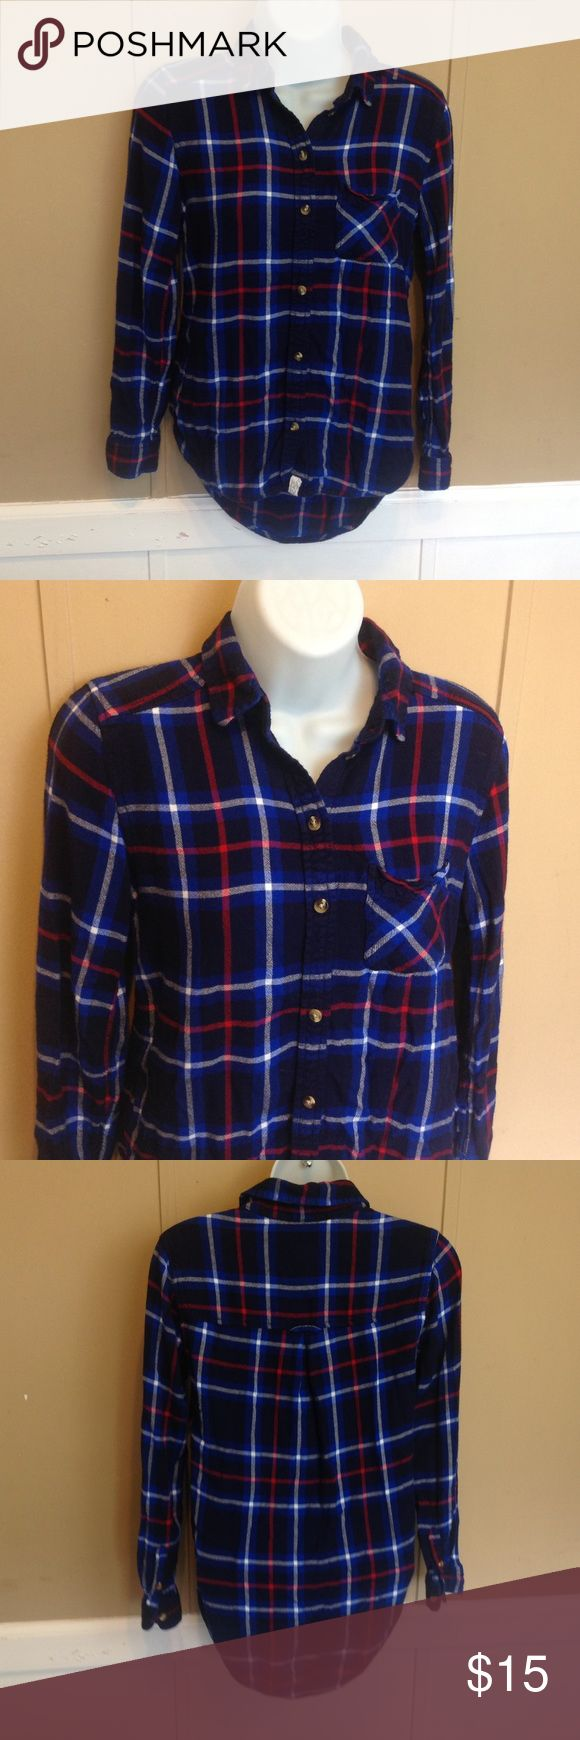 """American Eagle Blue Plaid Boyfriend Fit Flannel Maker: American Eagle ♥ Material: Viscose ♥ Color: Navy Blue Plaid ♥ Measured Size: Pit to pit- 17"""" Pit to cuff-16"""" Shoulder to waist- 23"""" in front, back is longer  ♥ Tag Size: XS ♥ Actual Size: XS PLEASE CHECK YOUR ACTUAL MEASUREMENTS TO MAKE SURE IT IS THE RIGHT SIZE! THANKS! ♥ Condition: Great ♥ Item #: (office use only) E  Follow us on Instagram and facebook for coupon codes!  INSTAGRAM-thehausofvintage1984 Facebook- intergalactic haus of…"""